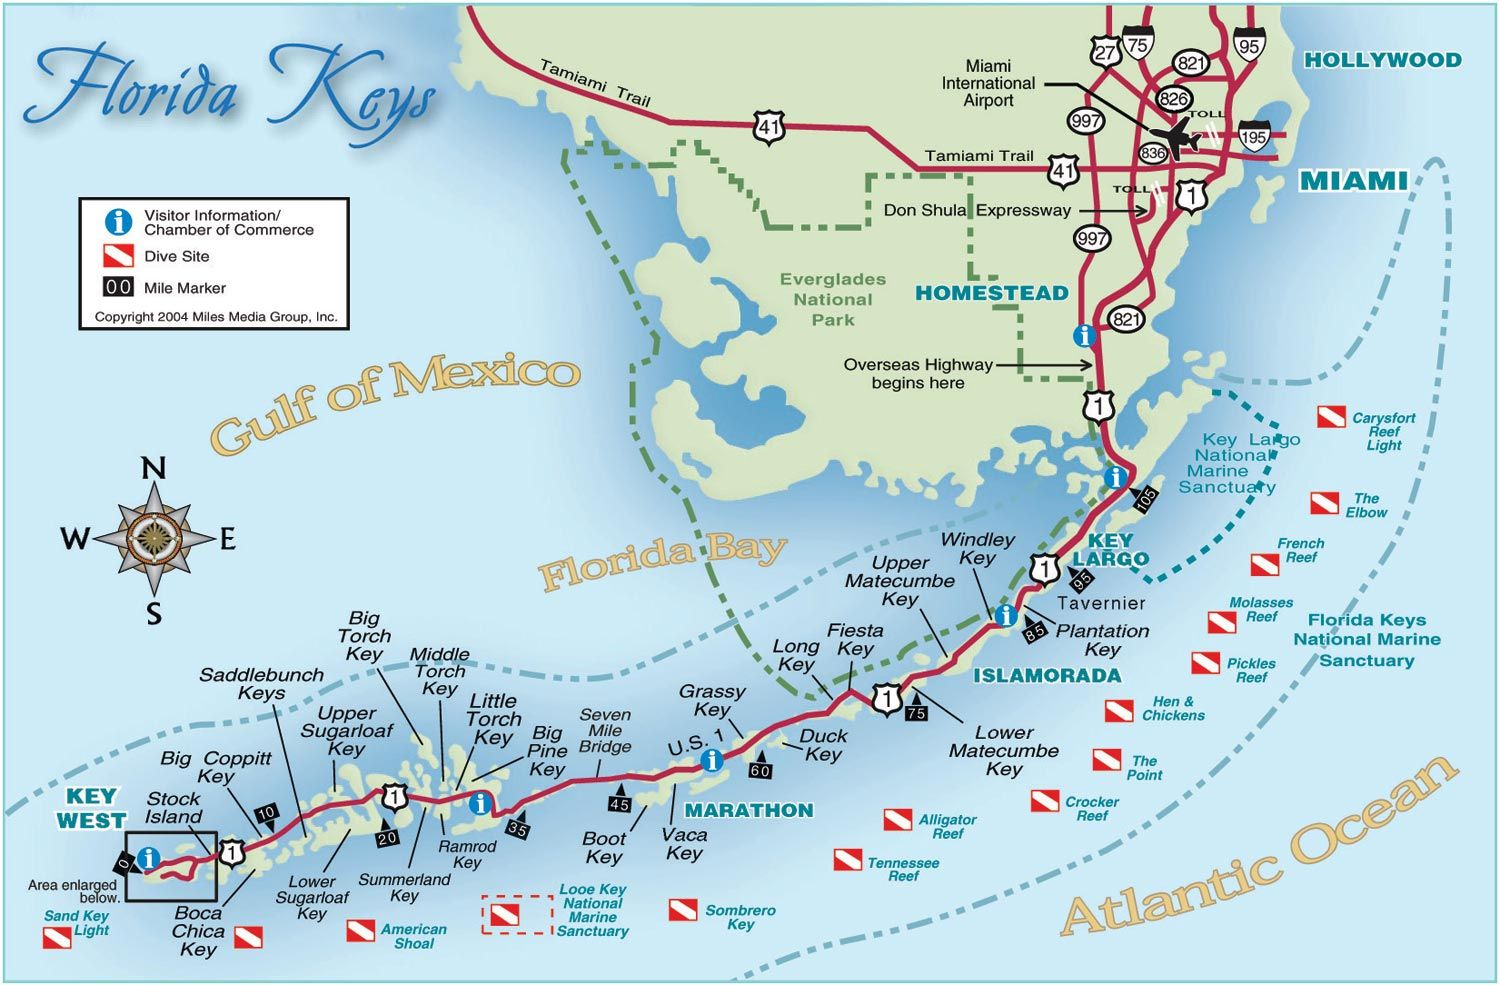 Image Detail For -Florida Keys And Key West Real Estate And Tourist - Map Of Hotels In Key West Florida